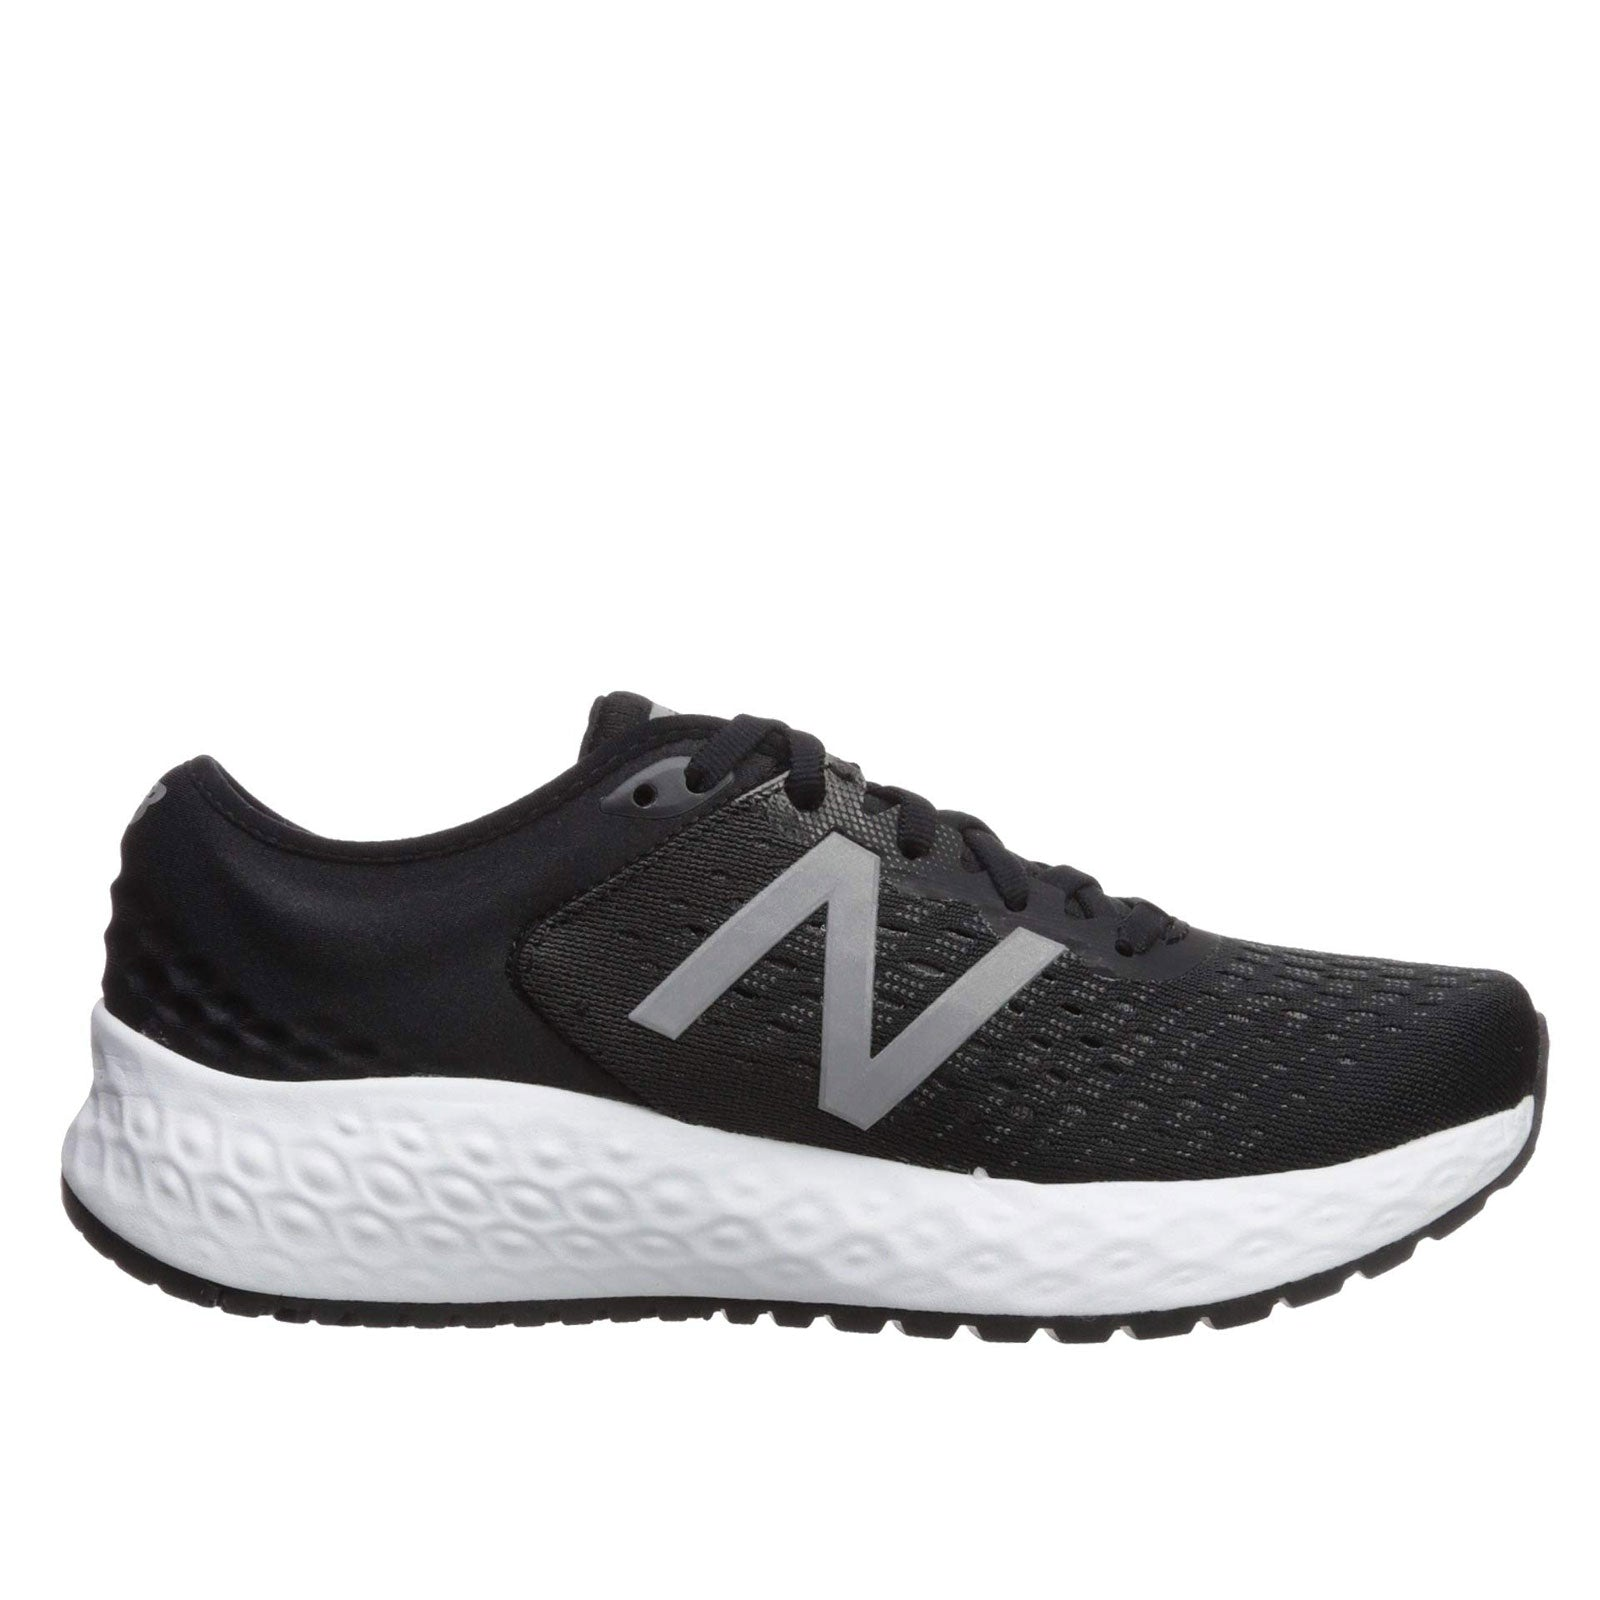 New Balance Fresh Foam 1080v9-Black/White